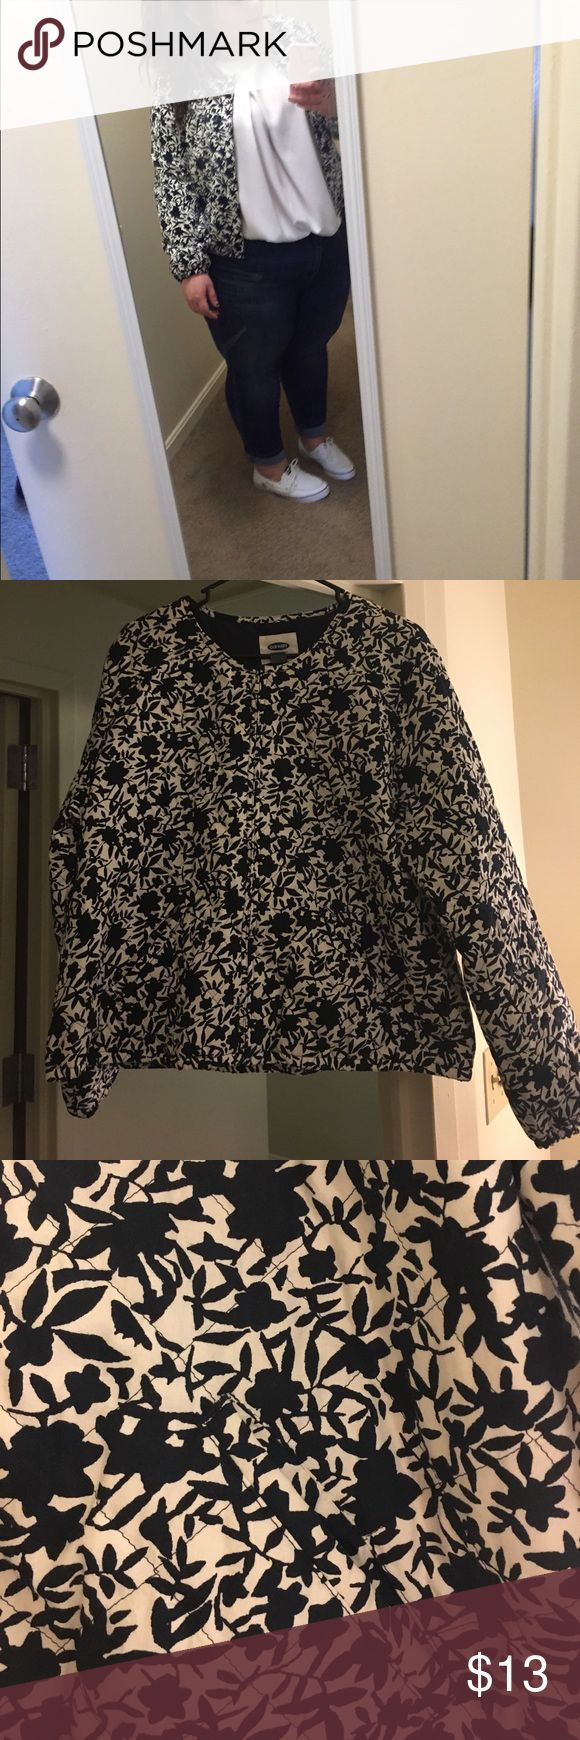 Old Navy Bomber Jacket - XL Blue and white floral print bomber jacket Old Navy Jackets & Coats